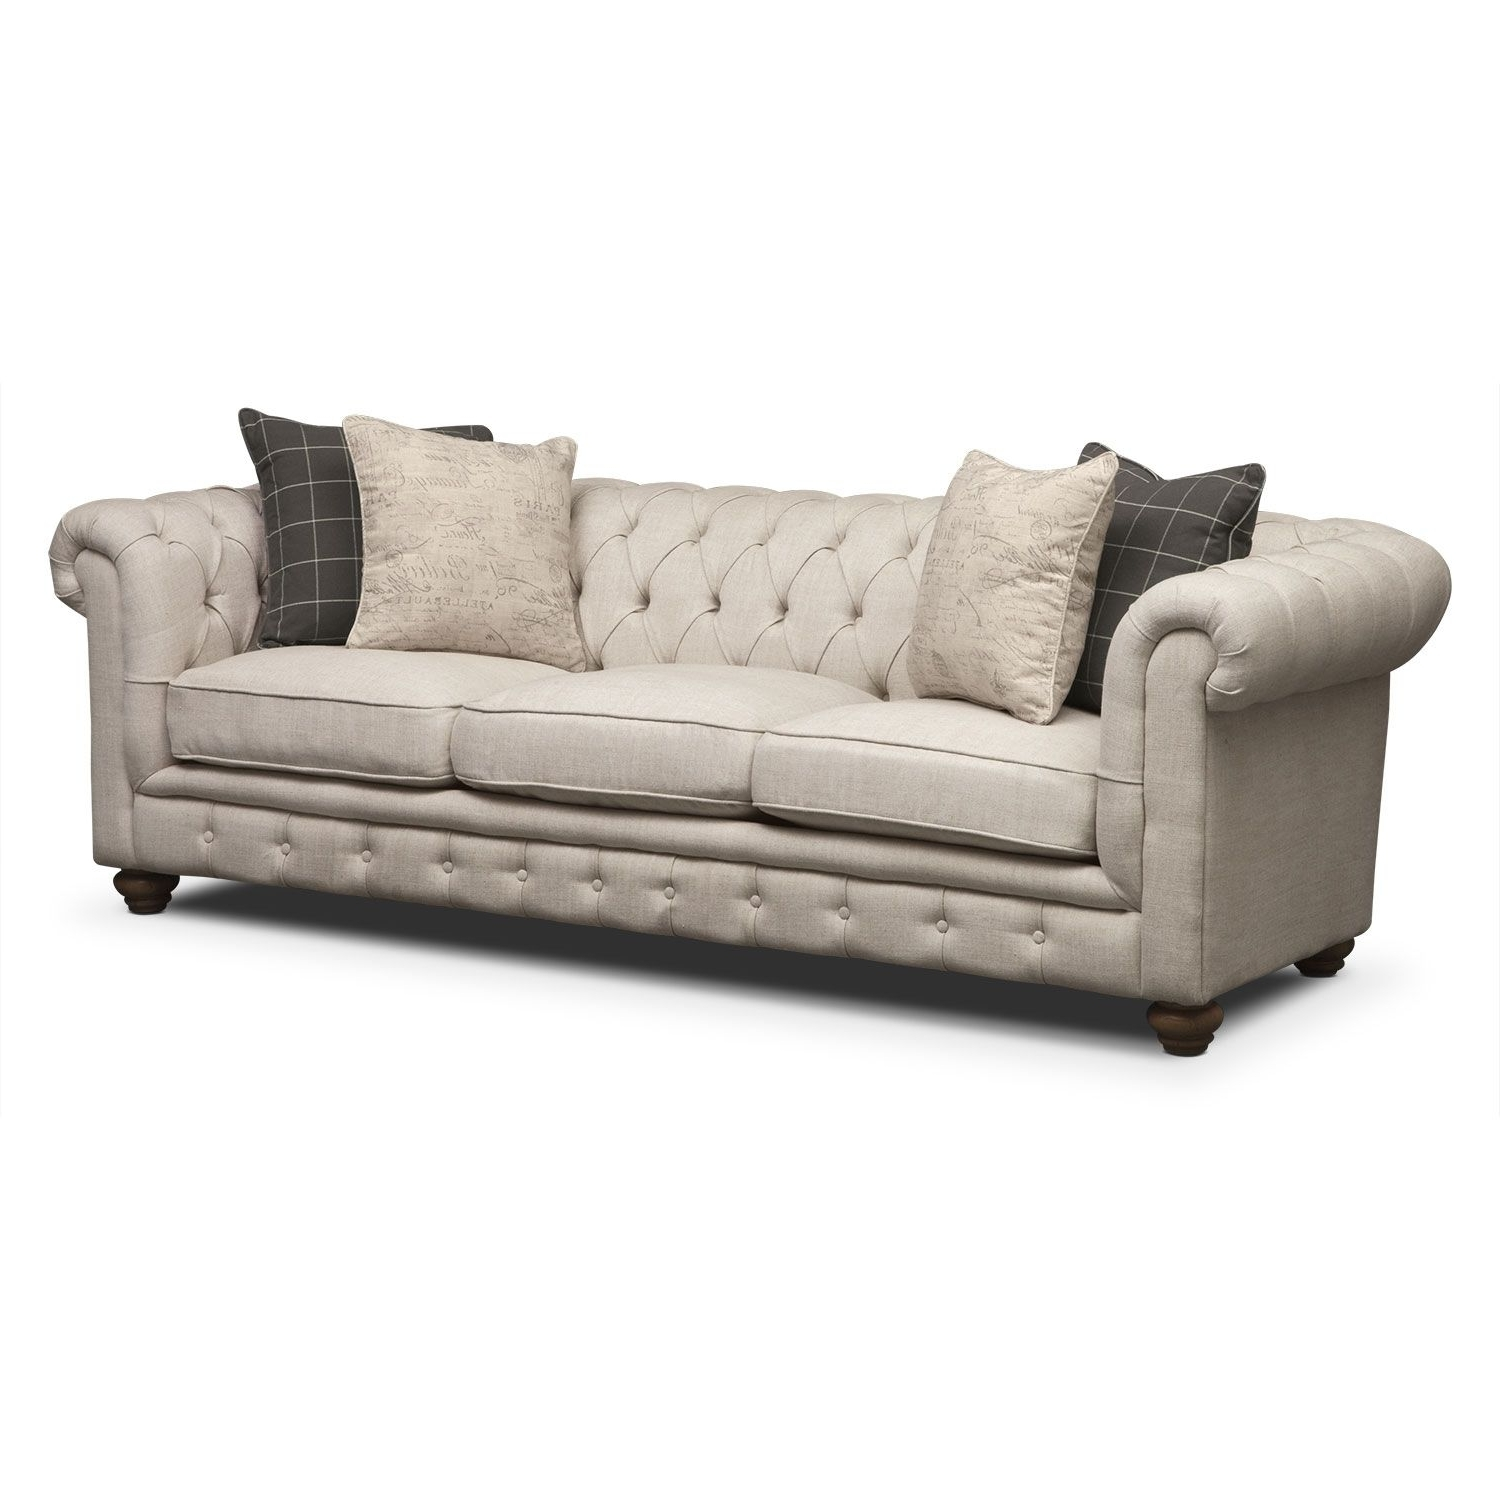 Living Room Furniture – Madeline Sofa; $799. Living Room (View 9 of 20)